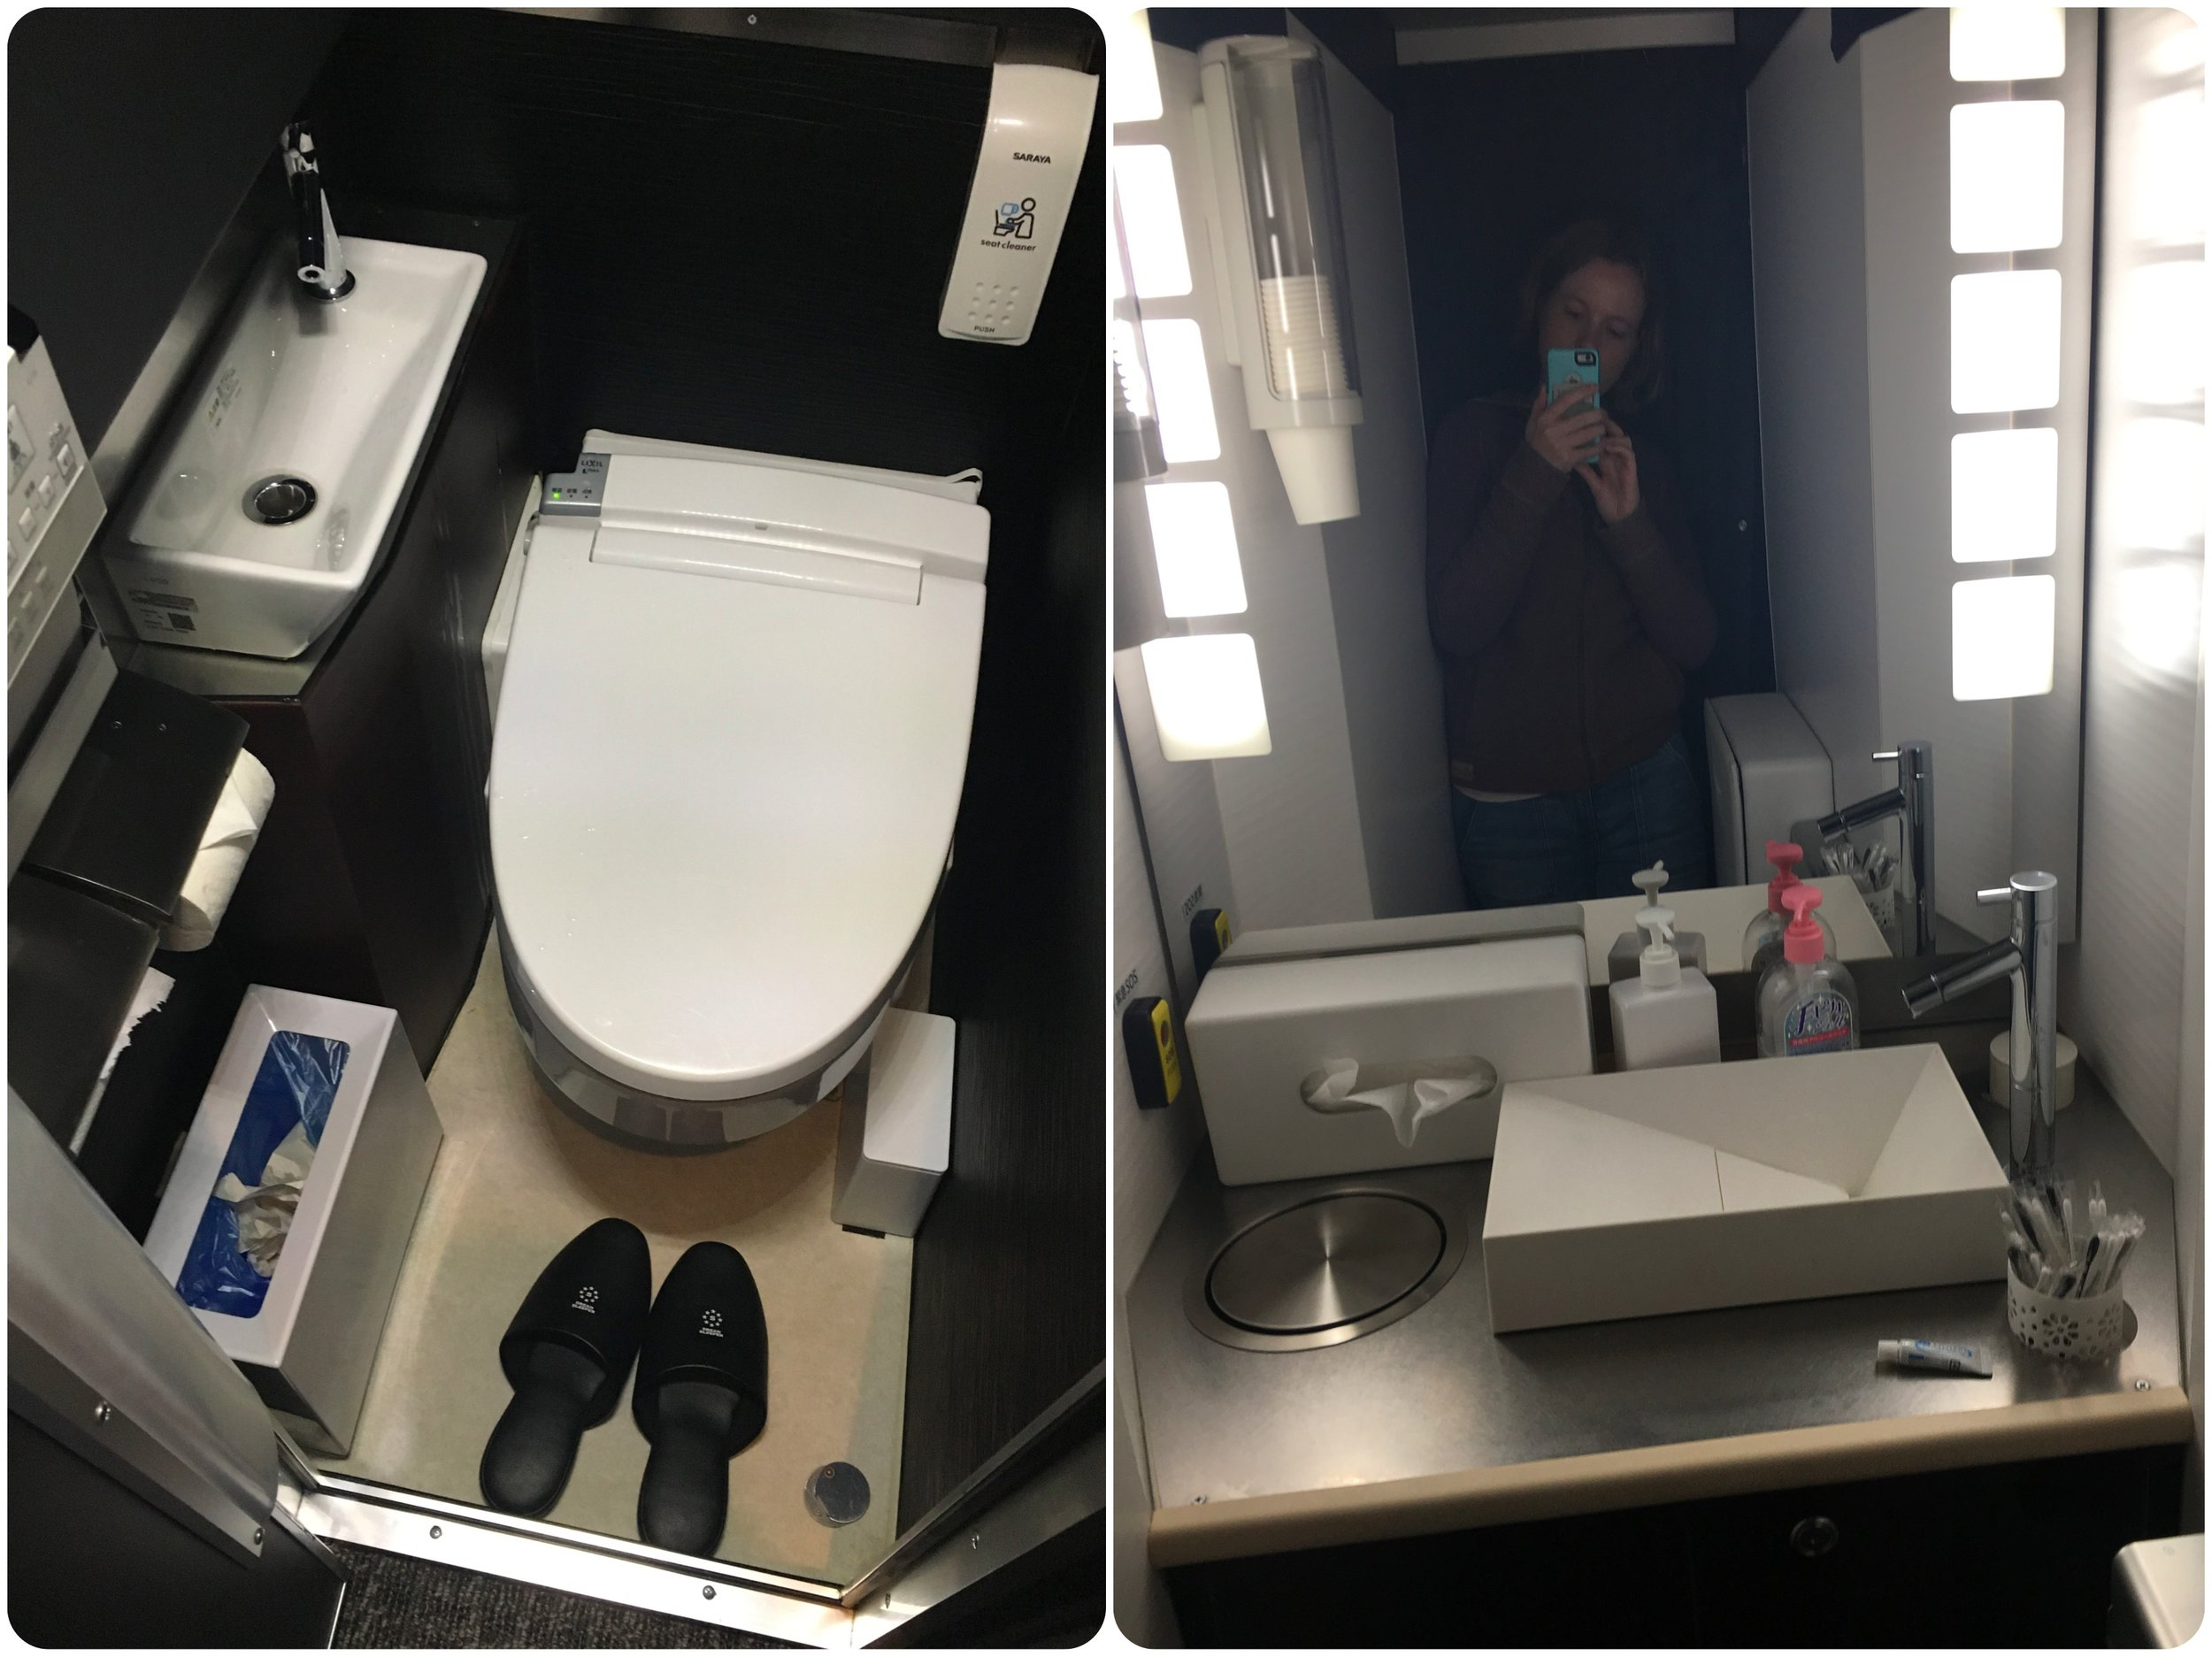 Toilet and 'powder room'.